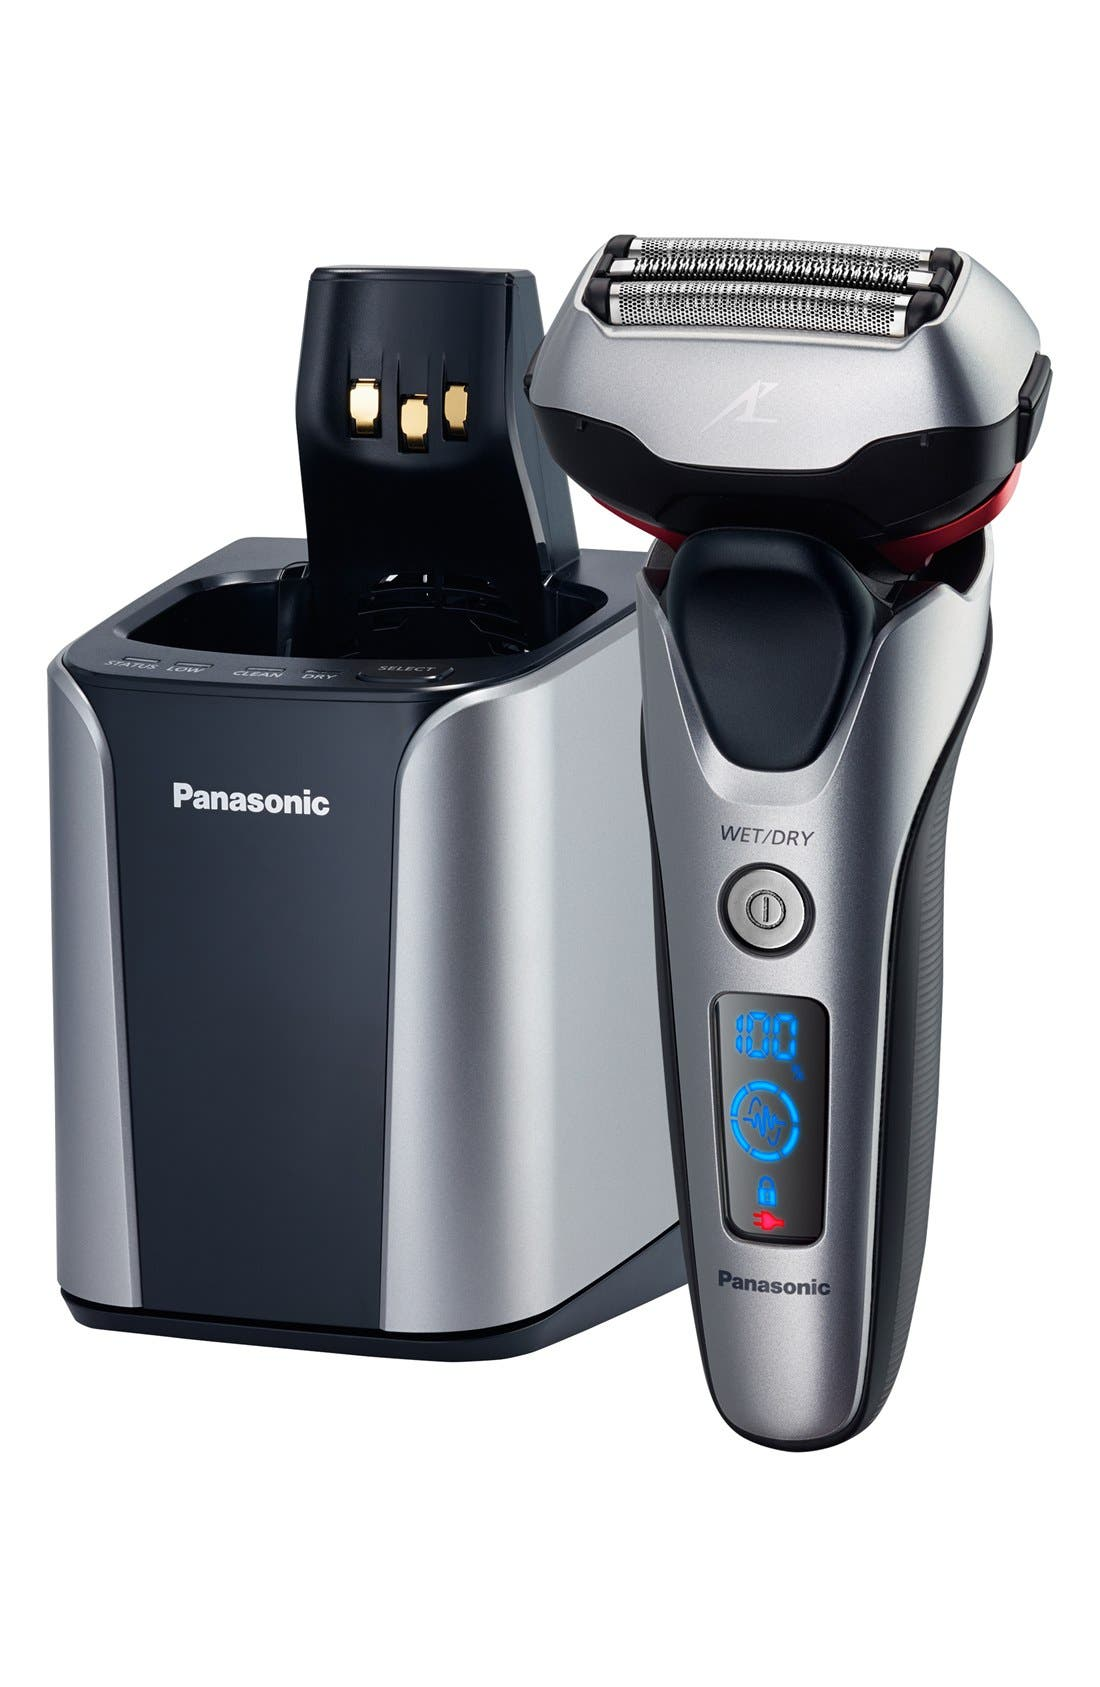 Panasonic 'ARC3' 3-Blade Wet/Dry Shaver & Cleansing Station (Nordstrom Exclusive)